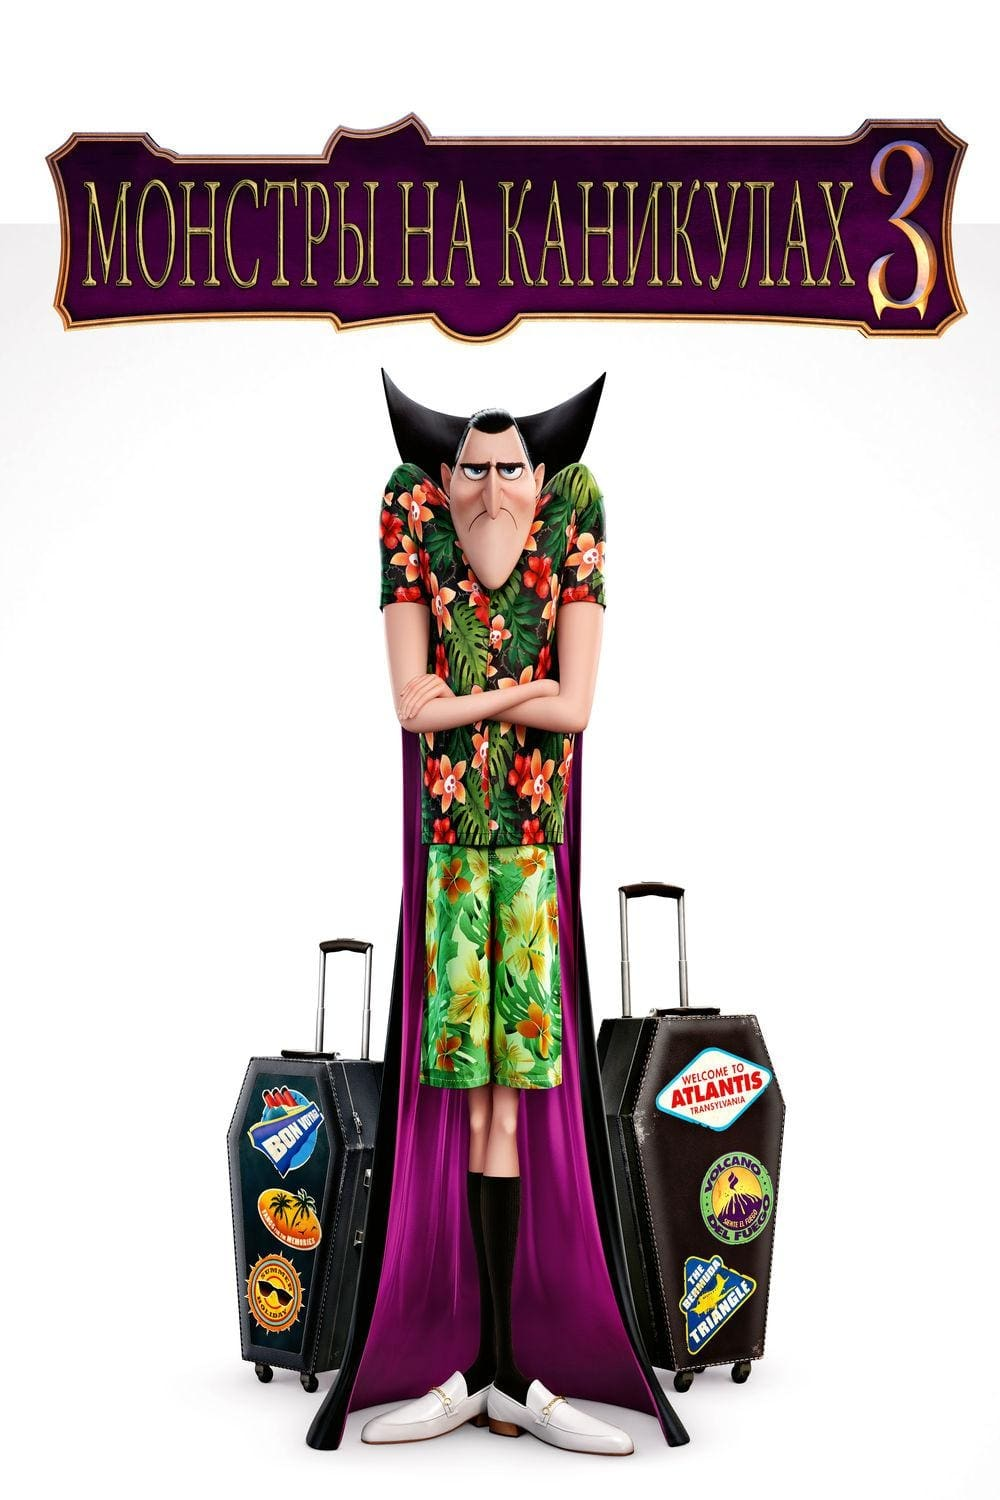 Poster and image movie Film Hotel Transilvania 3: Monstrii in Vacanta - Hotel Transilvania 3: Monştrii în Vacanţă - Hotel Transylvania 3: Summer Vacation 2018